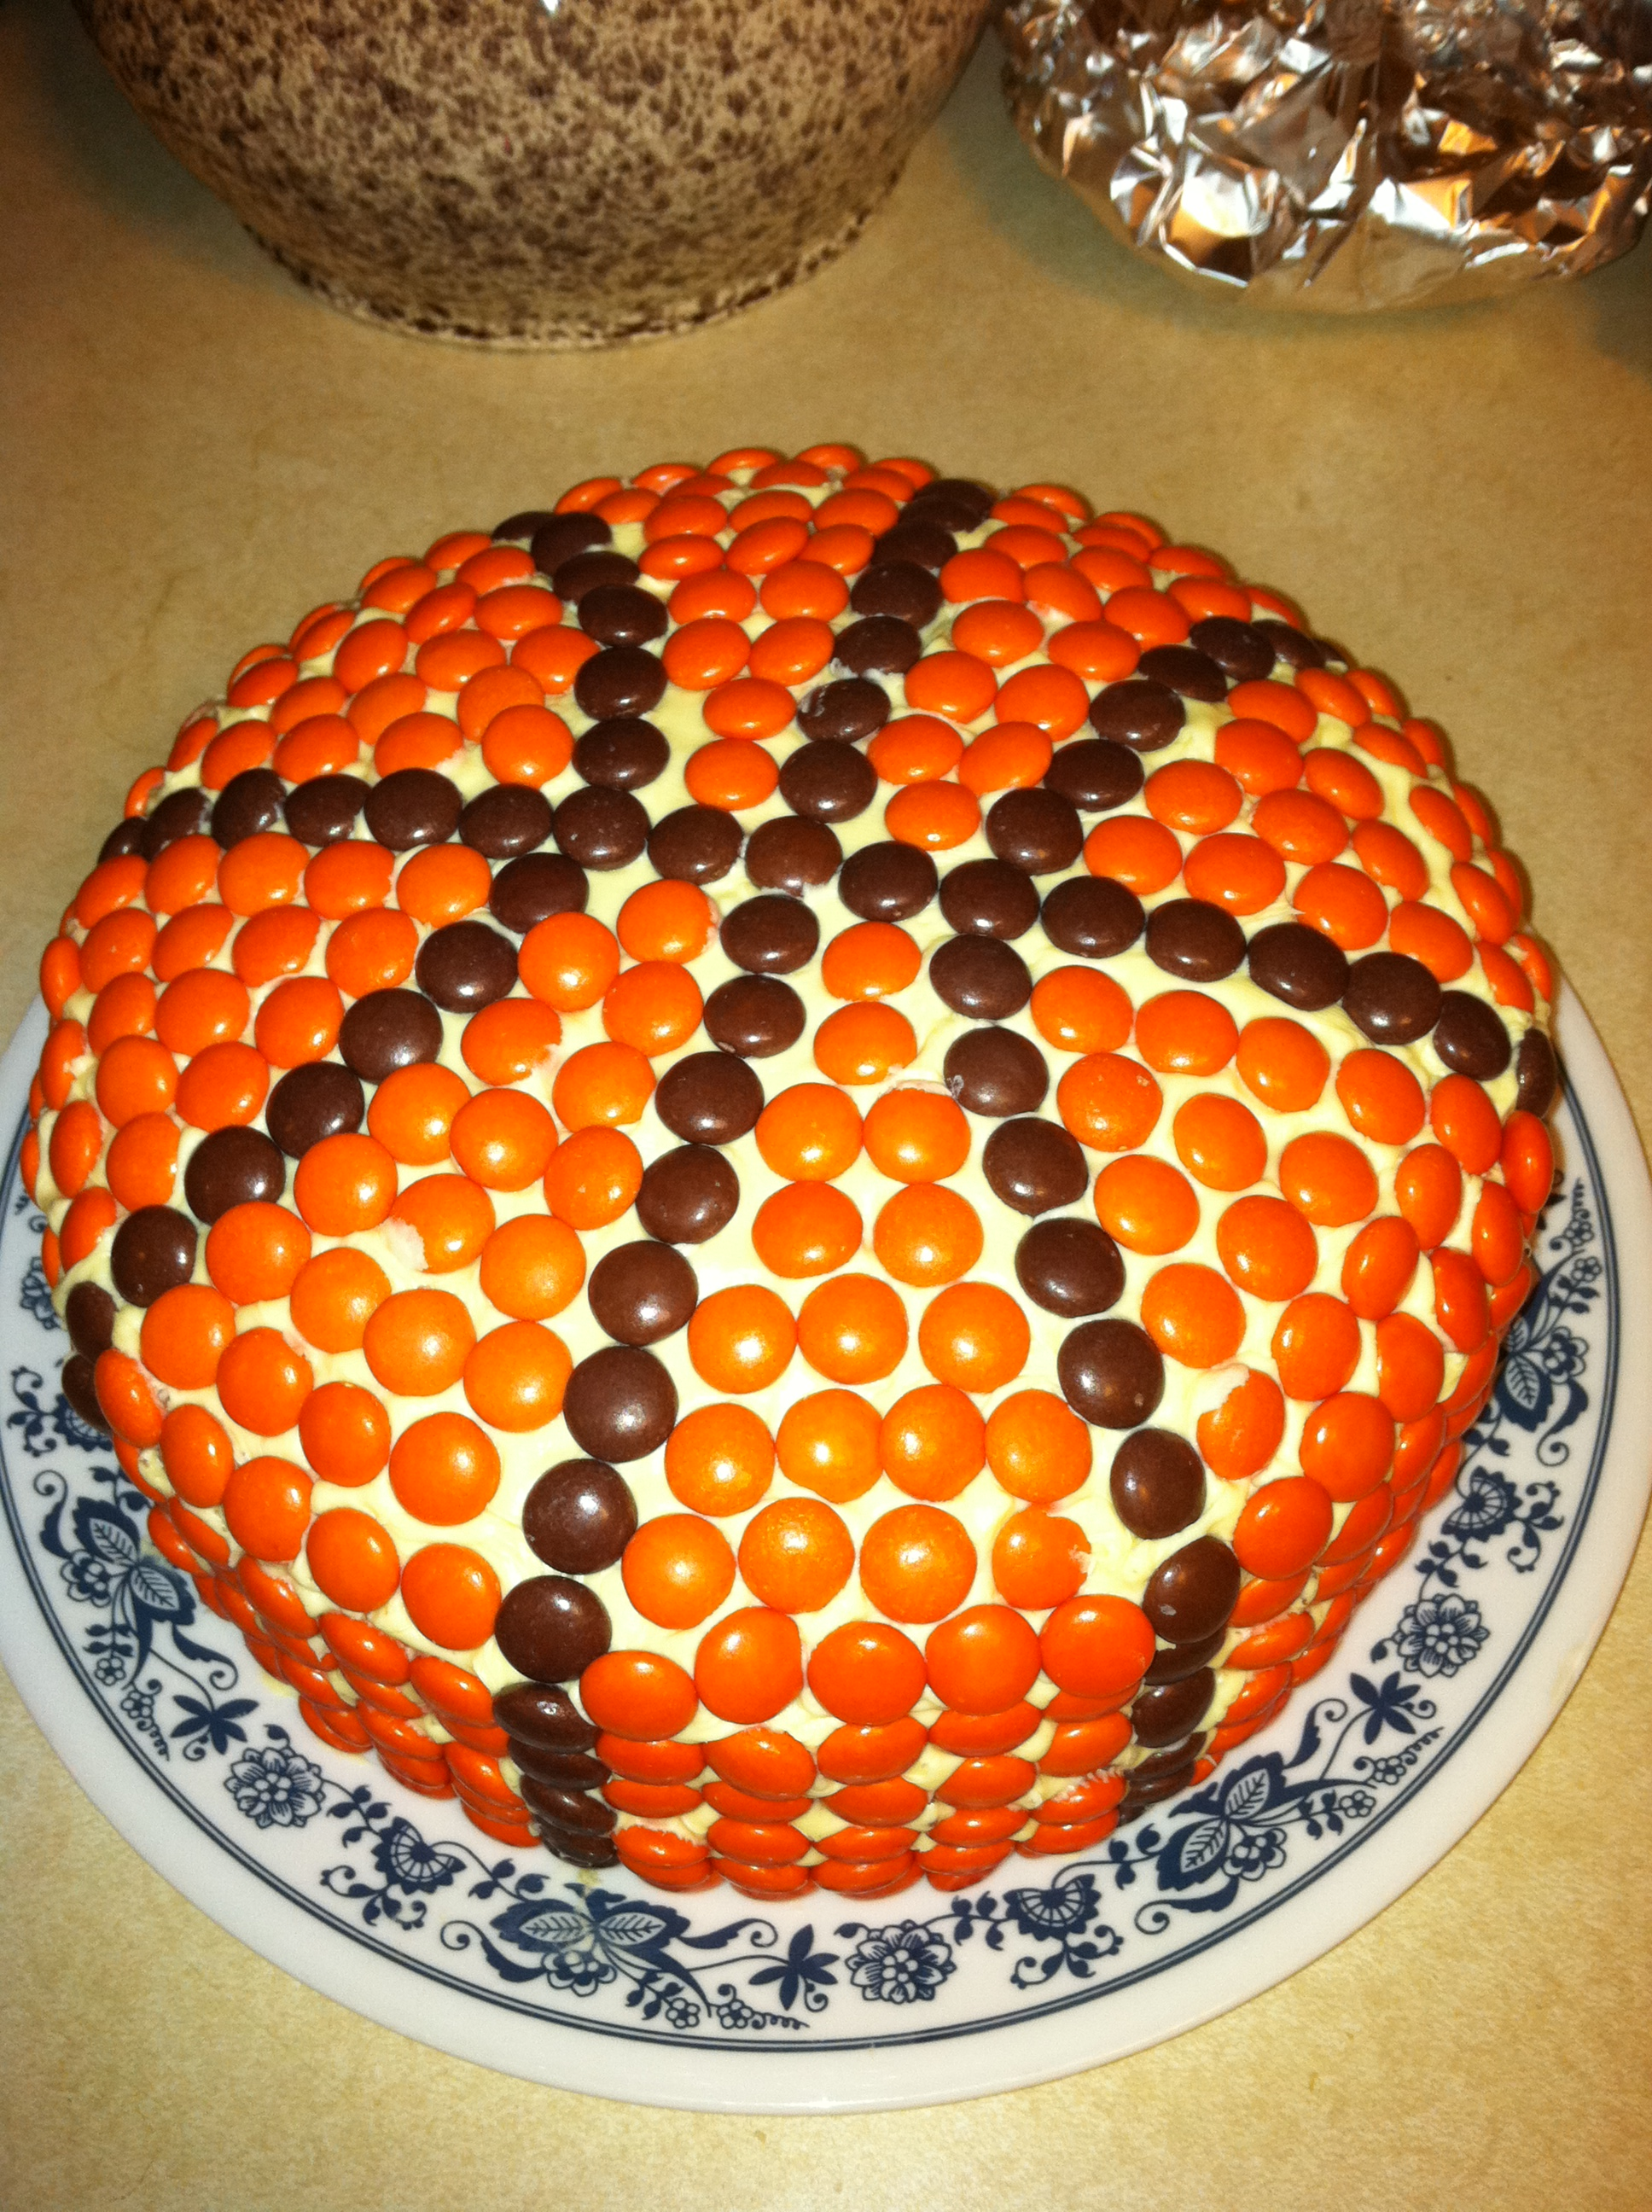 How to Make a High Quality Basketball Cake The Snarky Scoop